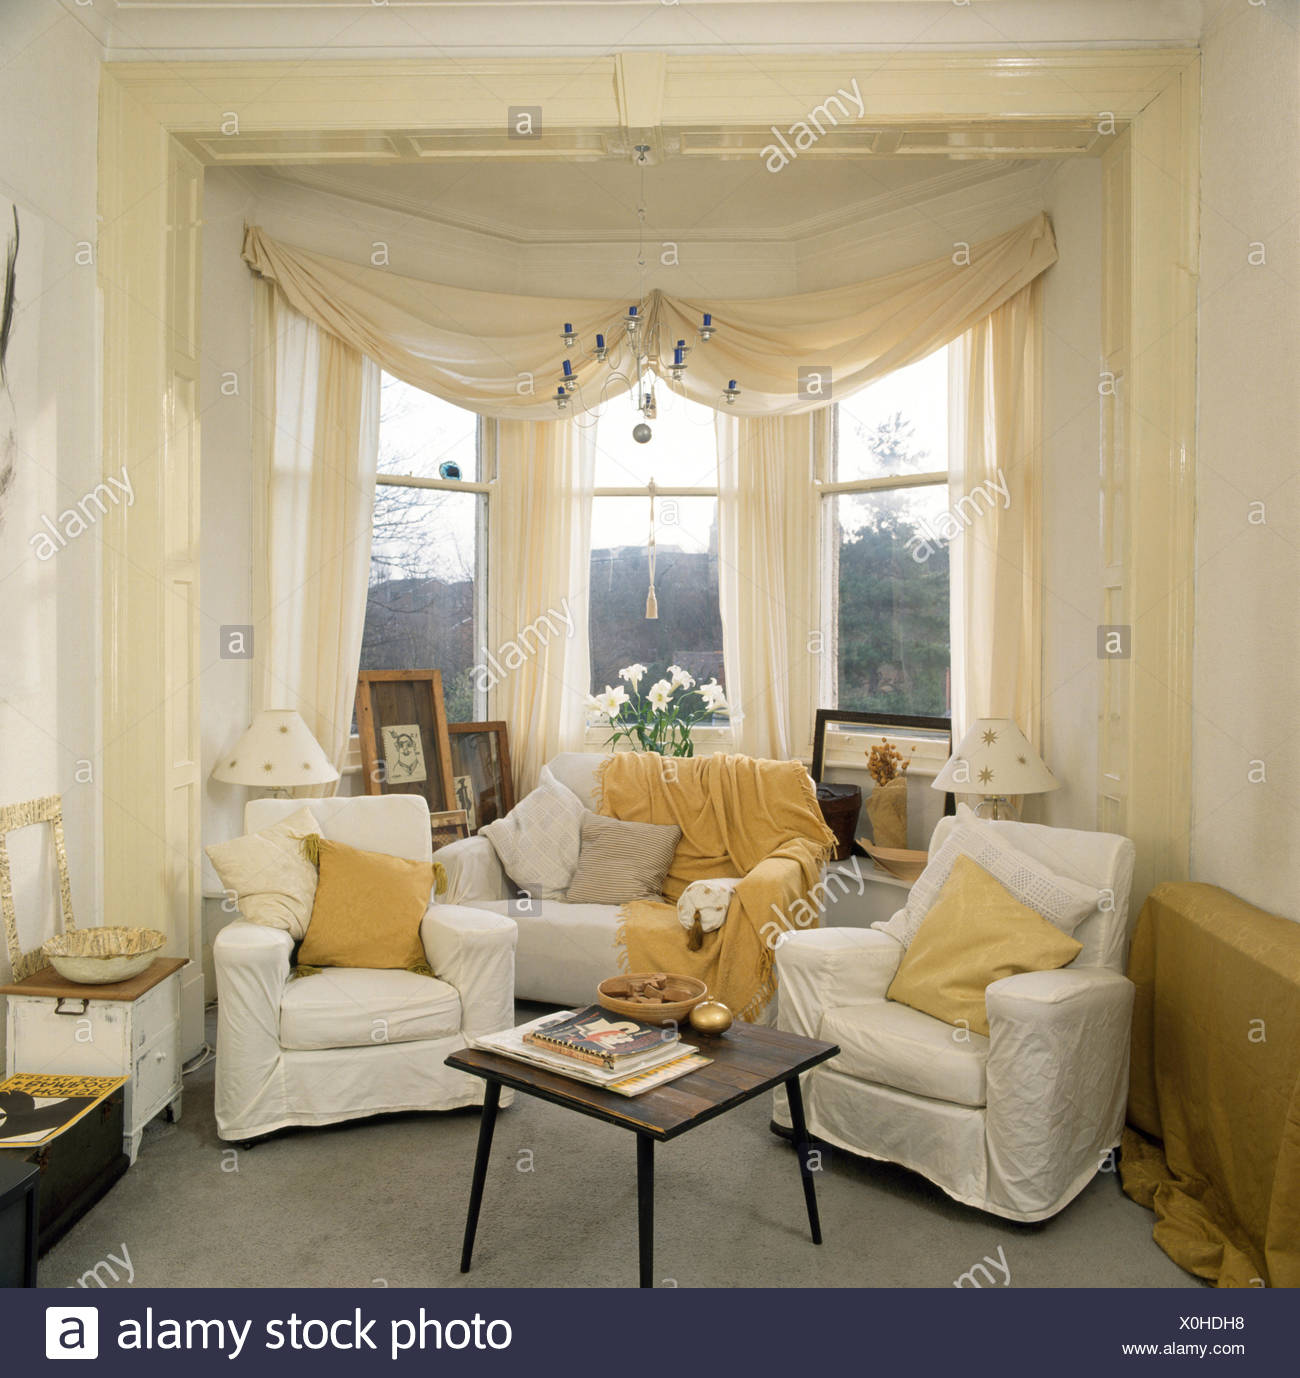 Bay Window Curtains Stock Photos & Bay Window Curtains